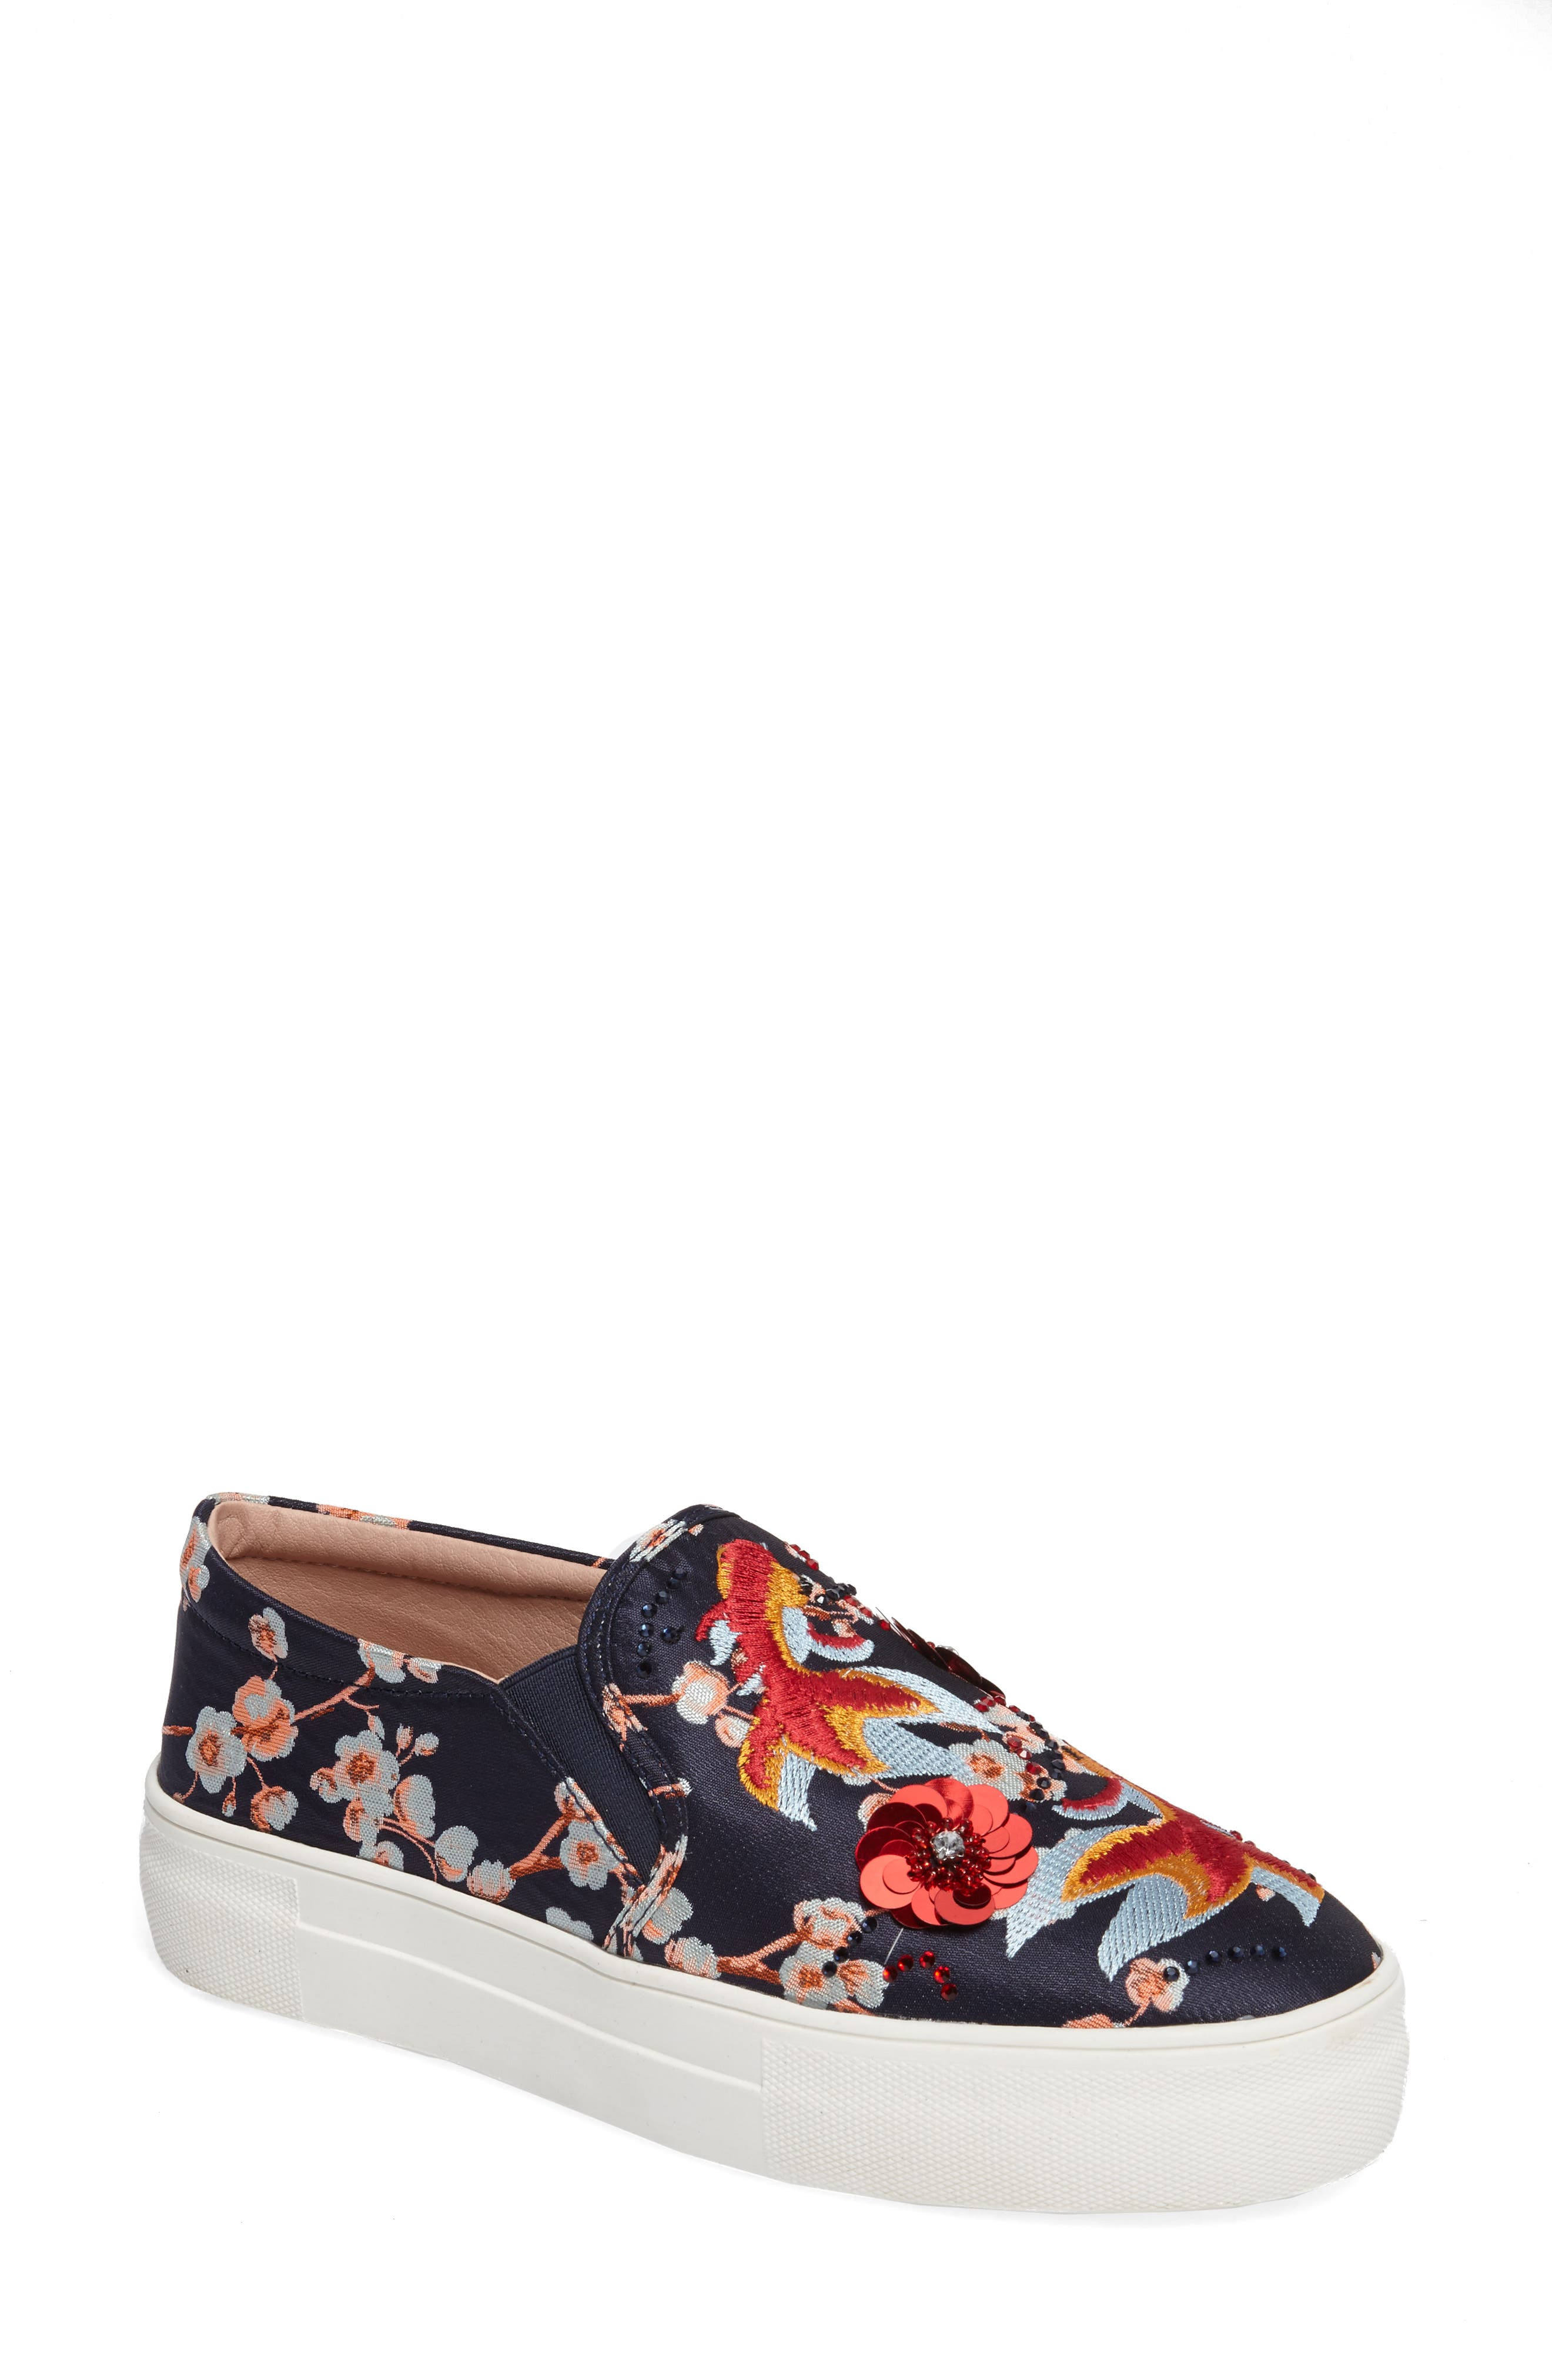 Theory Goldfish Embellished Slip-On Sneaker,                         Main,                         color, 001